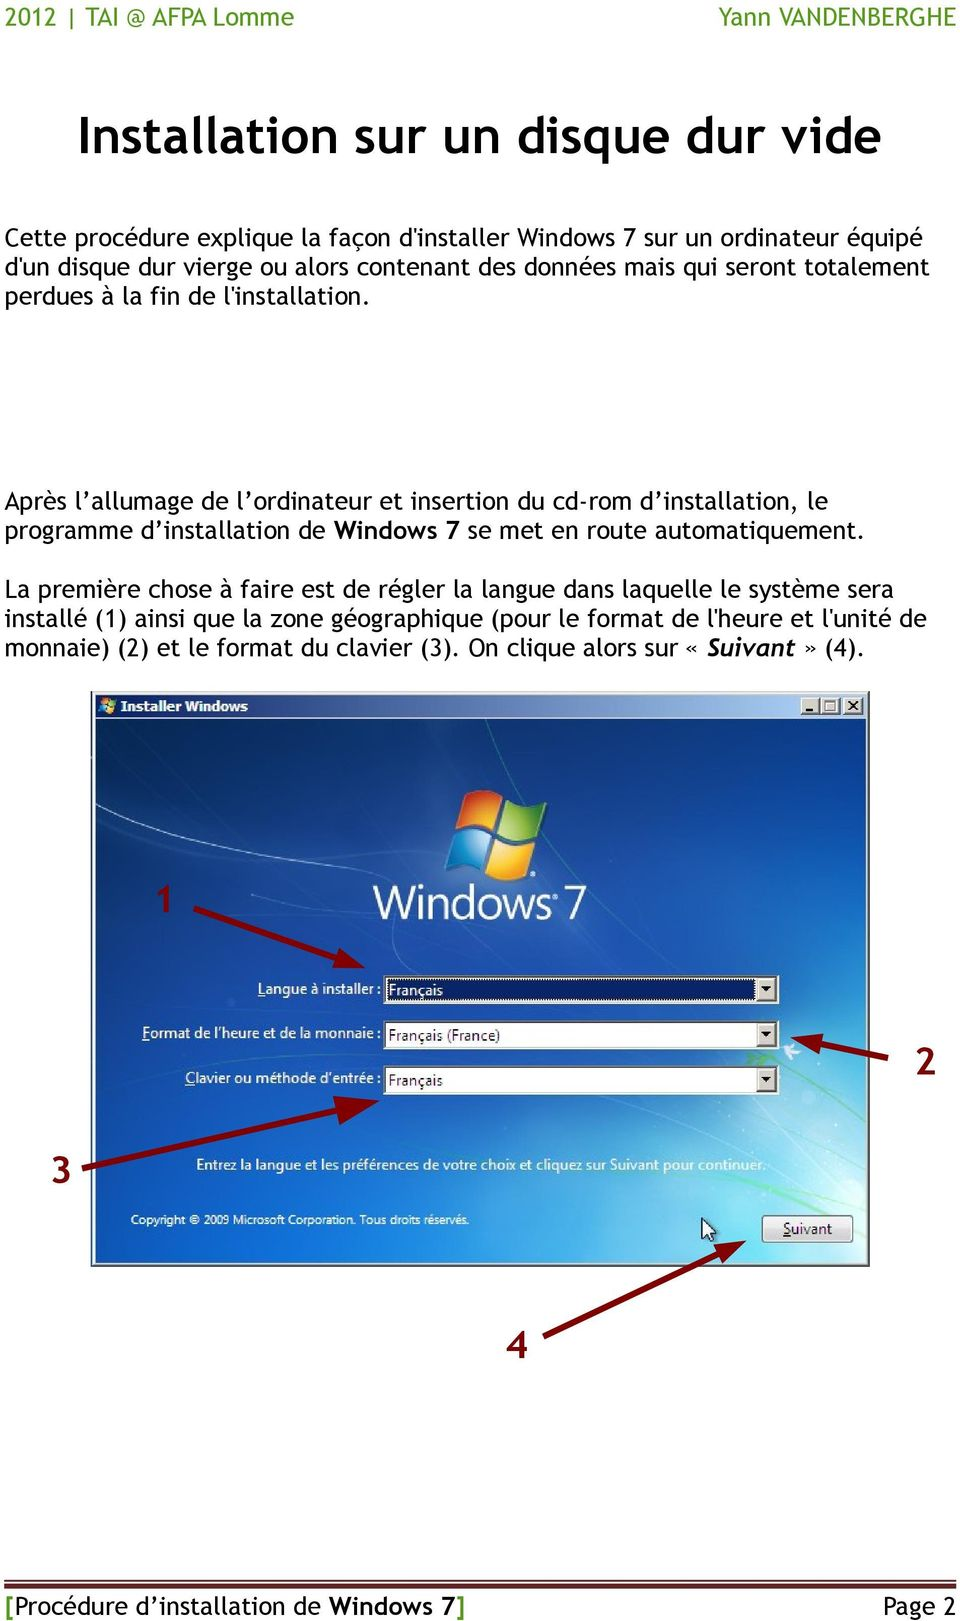 Après l allumage de l ordinateur et insertion du cd-rom d installation, le programme d installation de Windows 7 se met en route automatiquement.